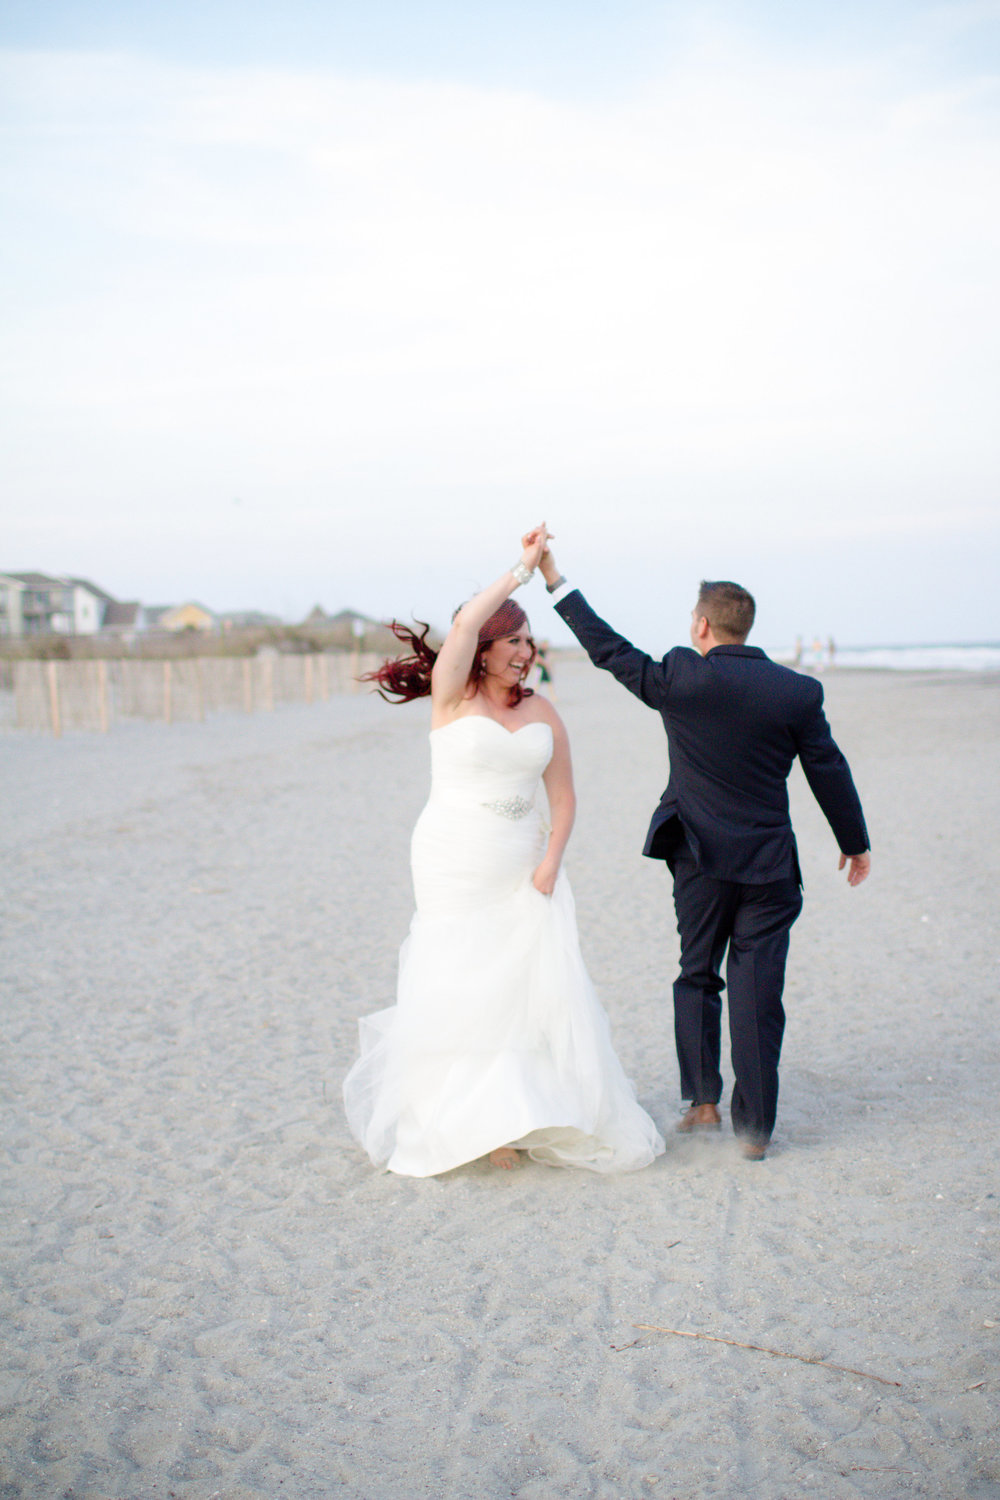 Folly Beach wedding photographer | Lorin Marie Photography